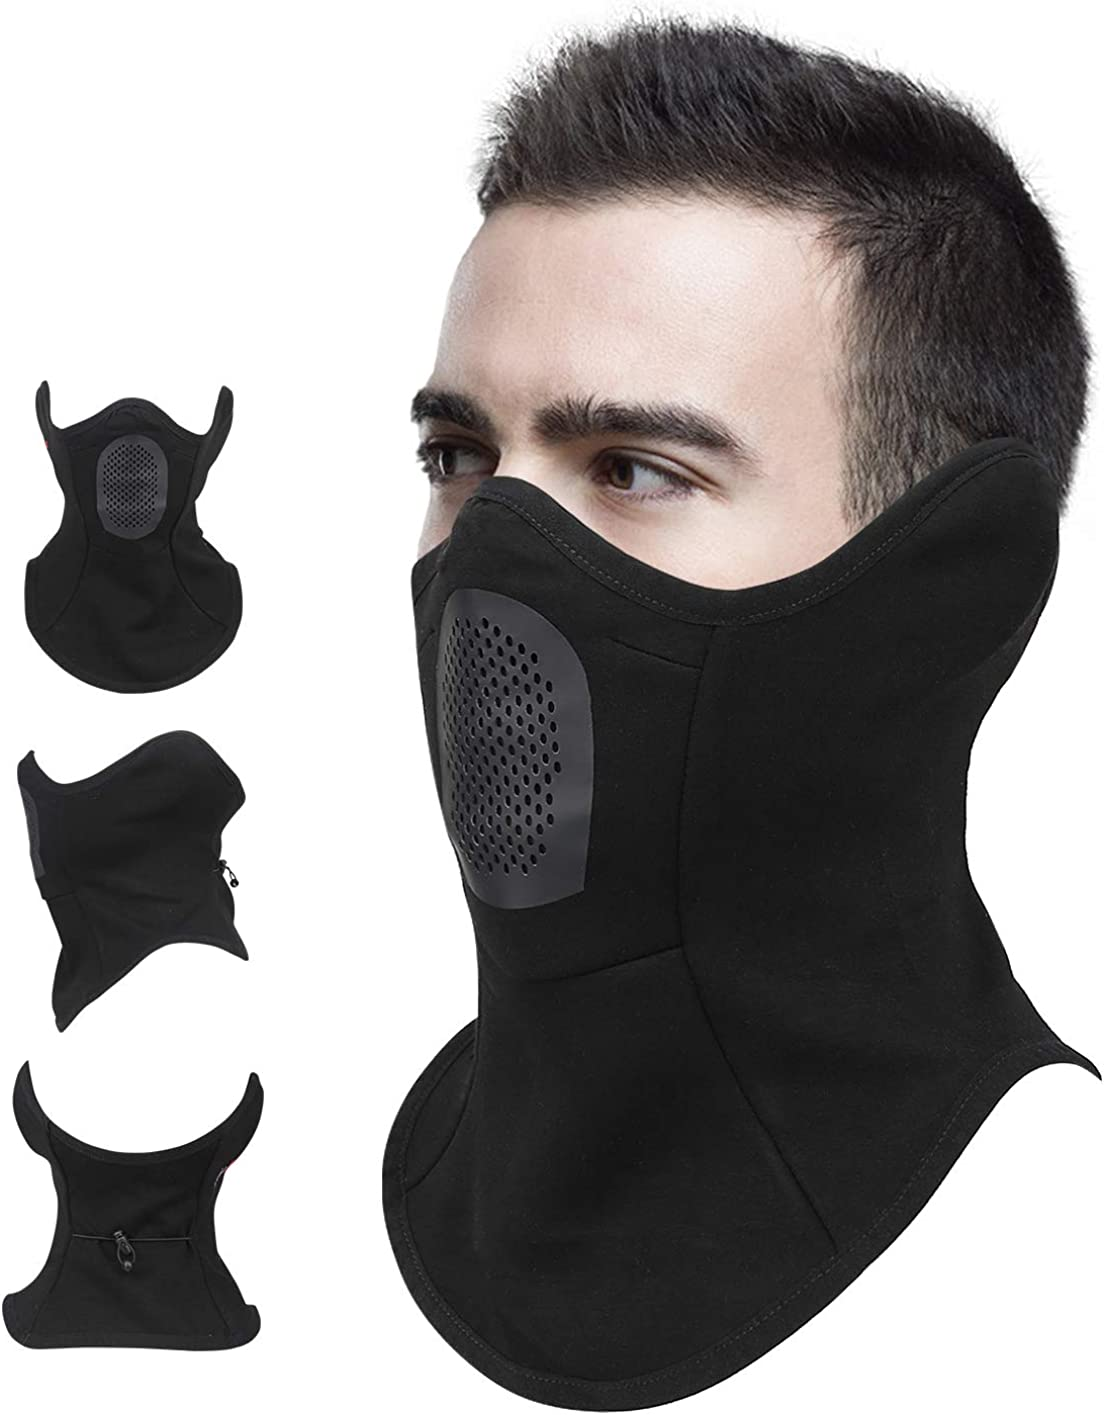 lululeague Half Balaclava Face Mask, Half Face Ski Mask for Running, Skiing, Snowboarding, Motorcycle Riding & Other Sports Protection - Winter Face Mask & Neck Gaiter for Men & Women Mask Black